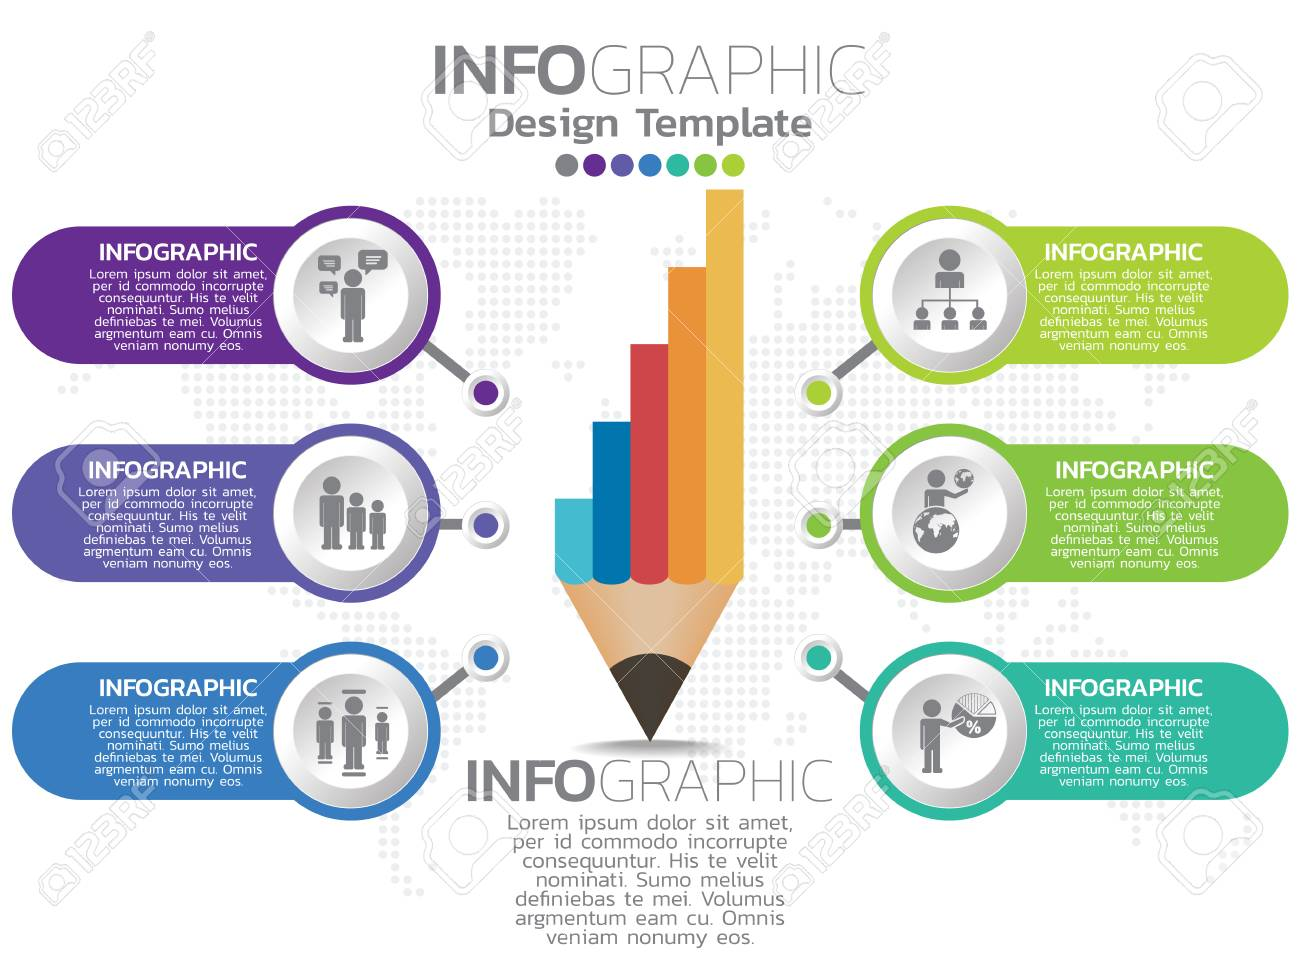 Infographic template design with 6 color options. - 115166200